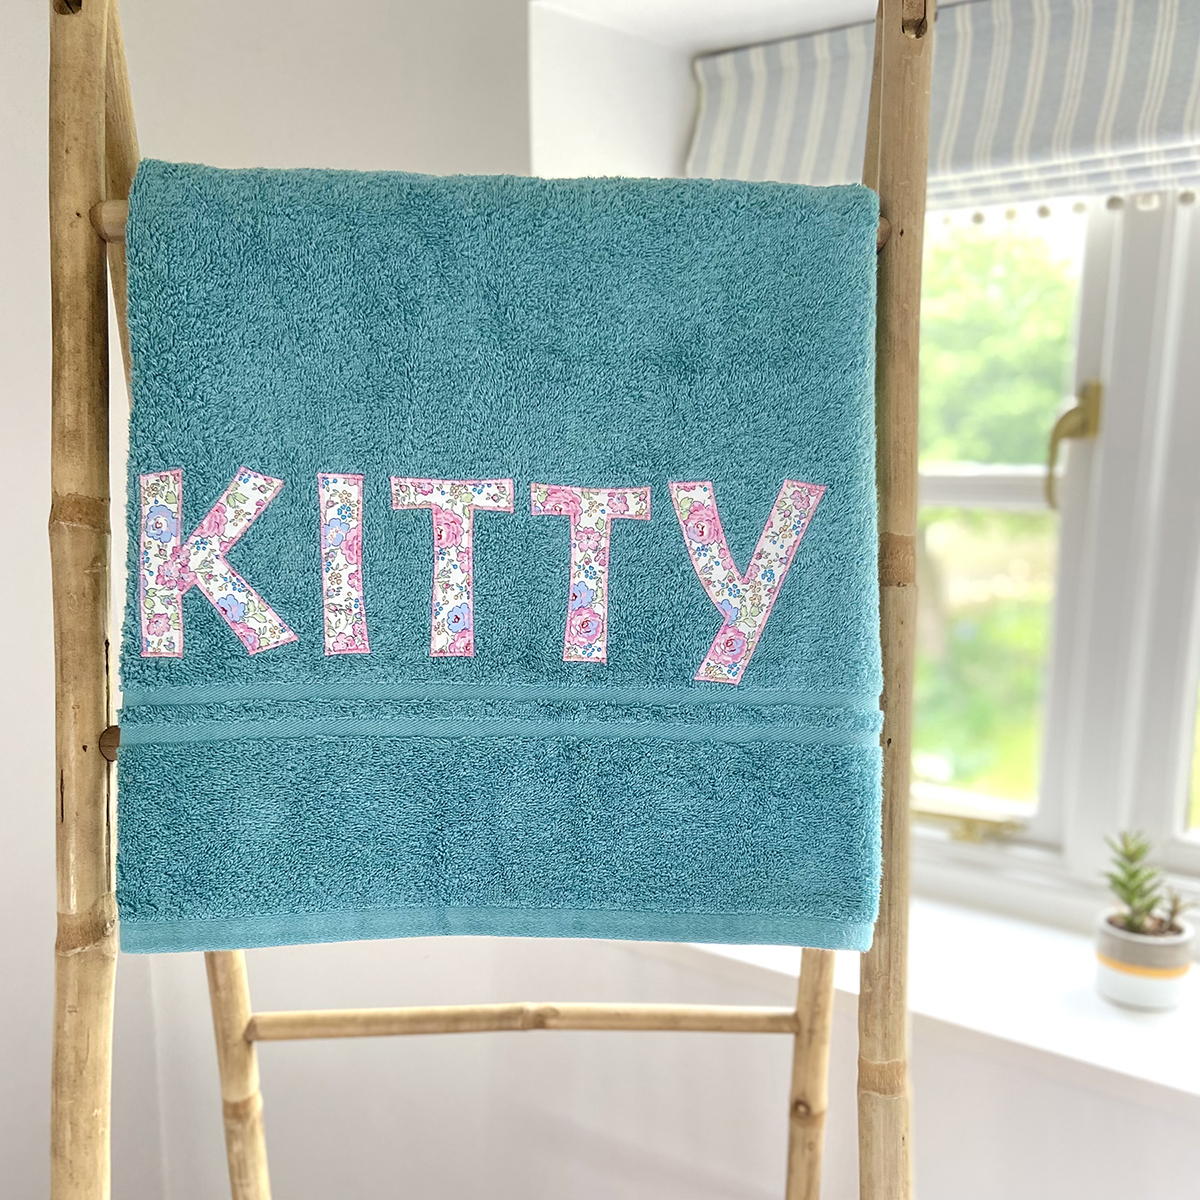 Pretty Green Towels with Liberty Print Letters